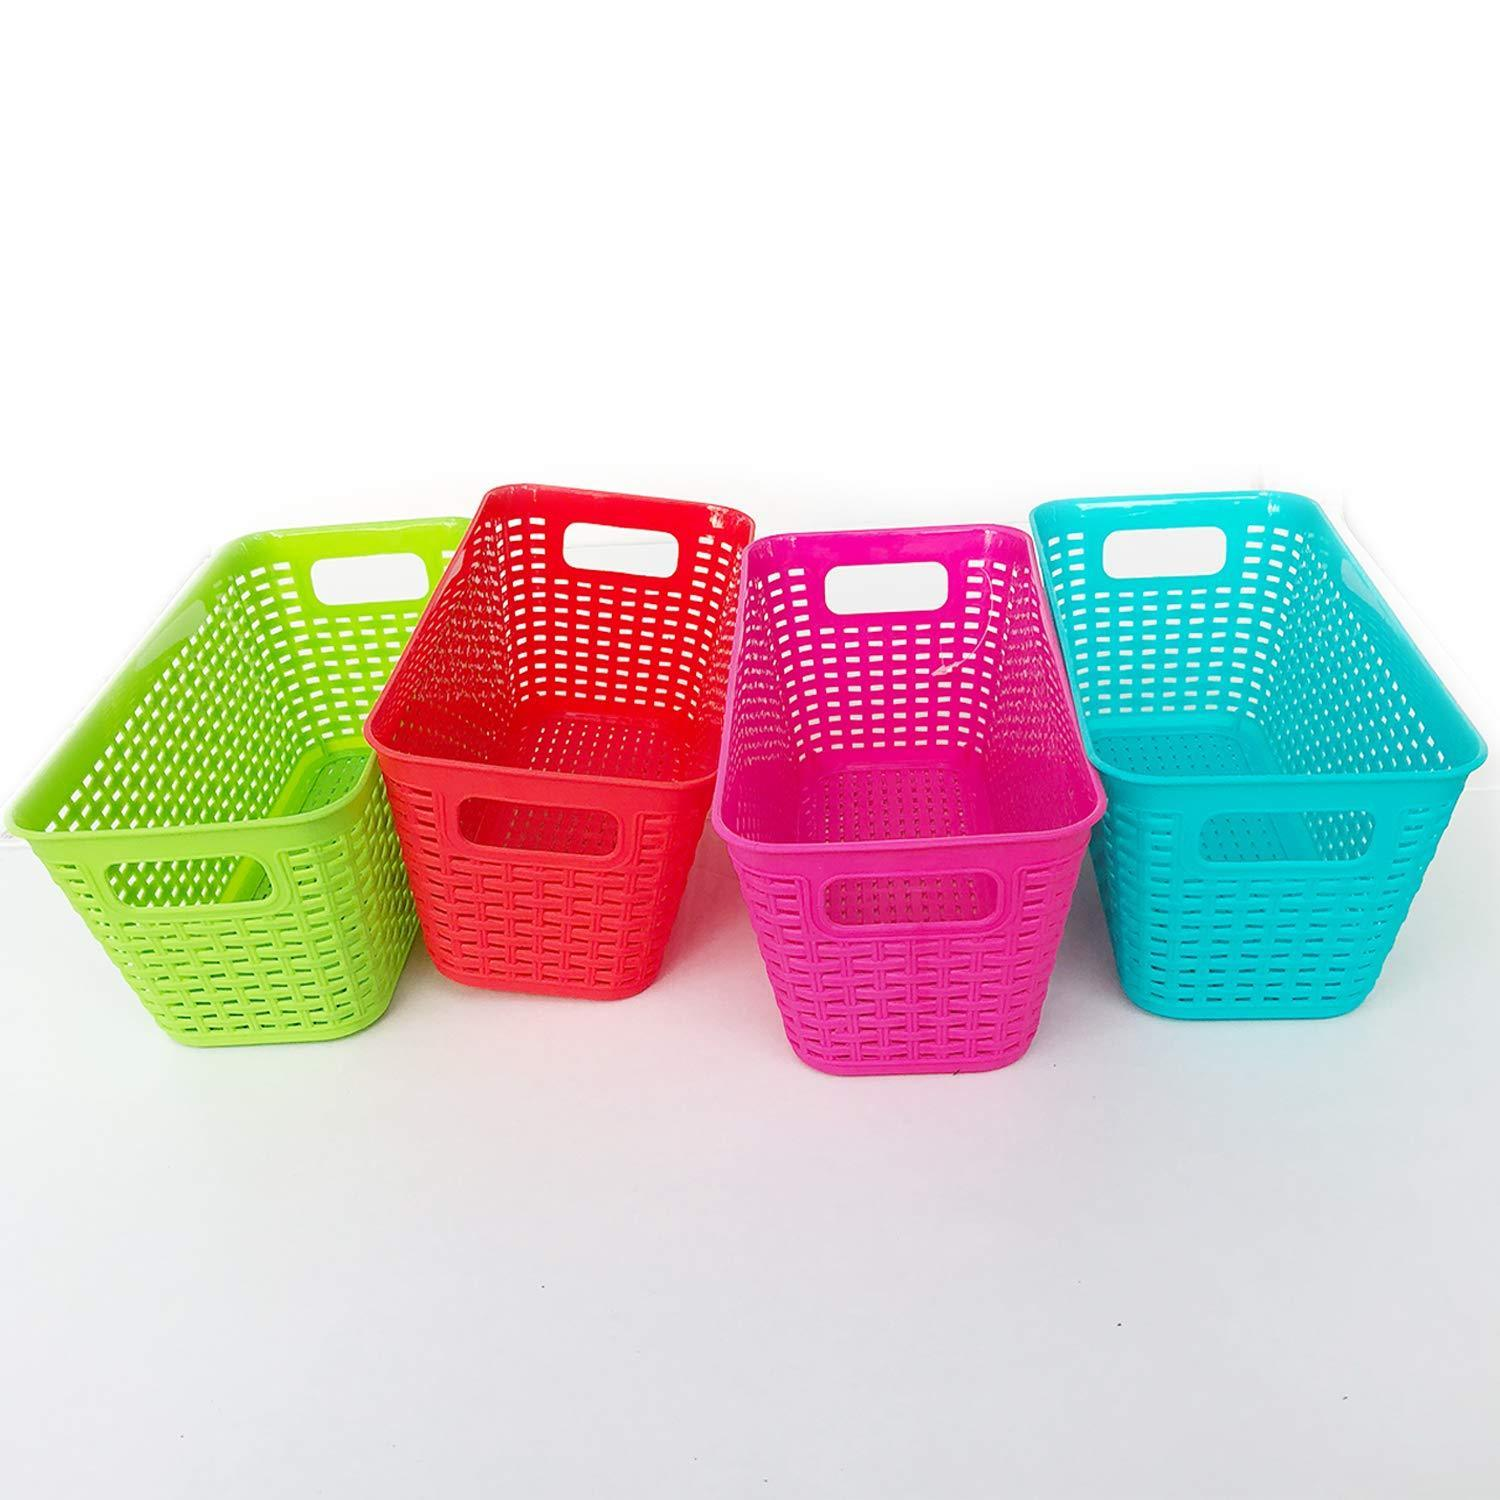 Try small colorful plastic baskets rectangle tray pantry organization and storage kitchen cabinet spice rack food shelf organizer organizing for desks drawers weave deep closets lockers